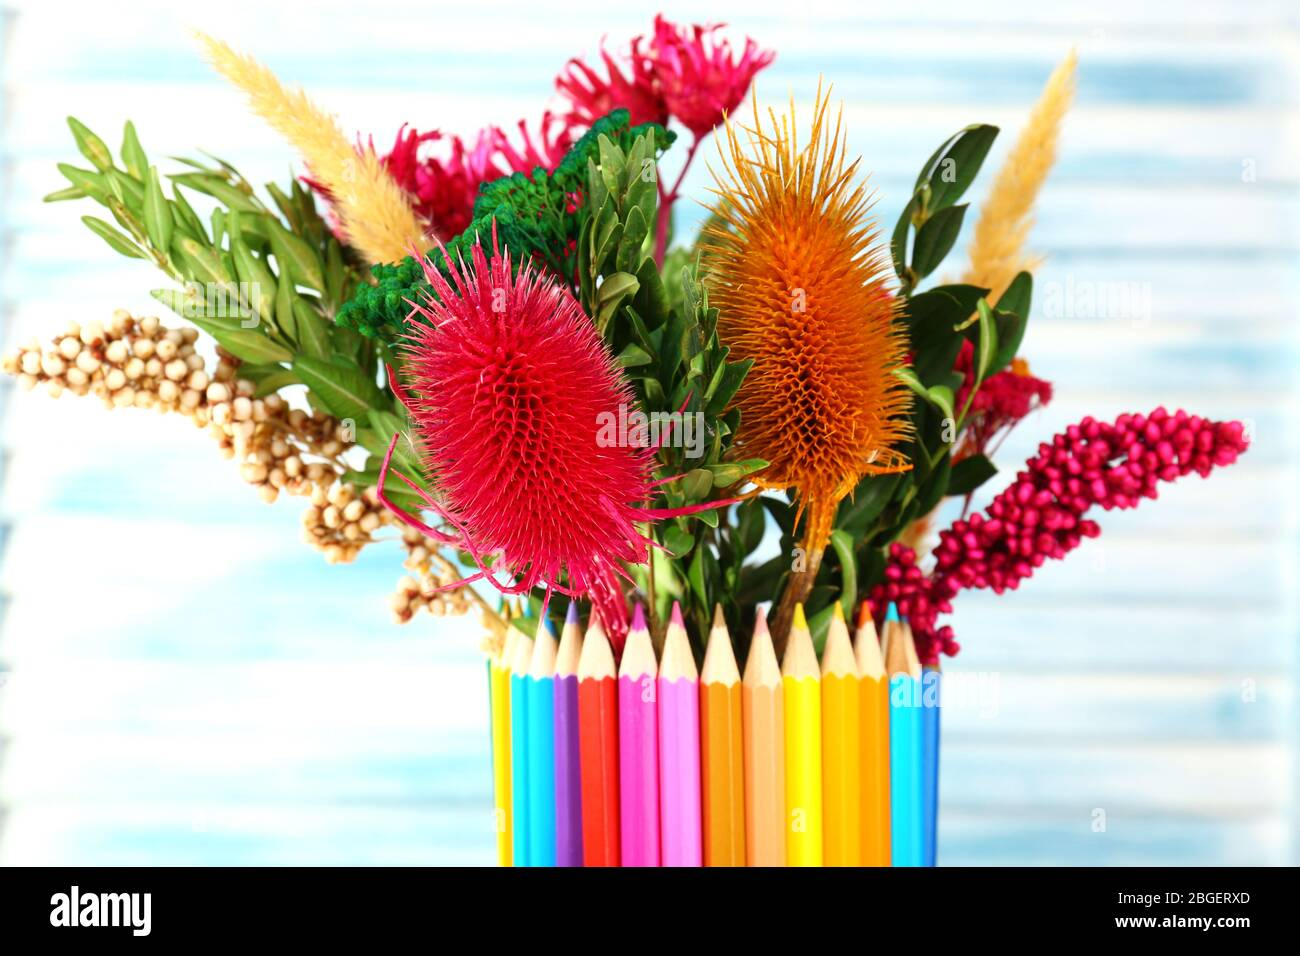 Beautiful Flowers In Colorful Pencils Vase On Wooden Background Stock Photo Alamy